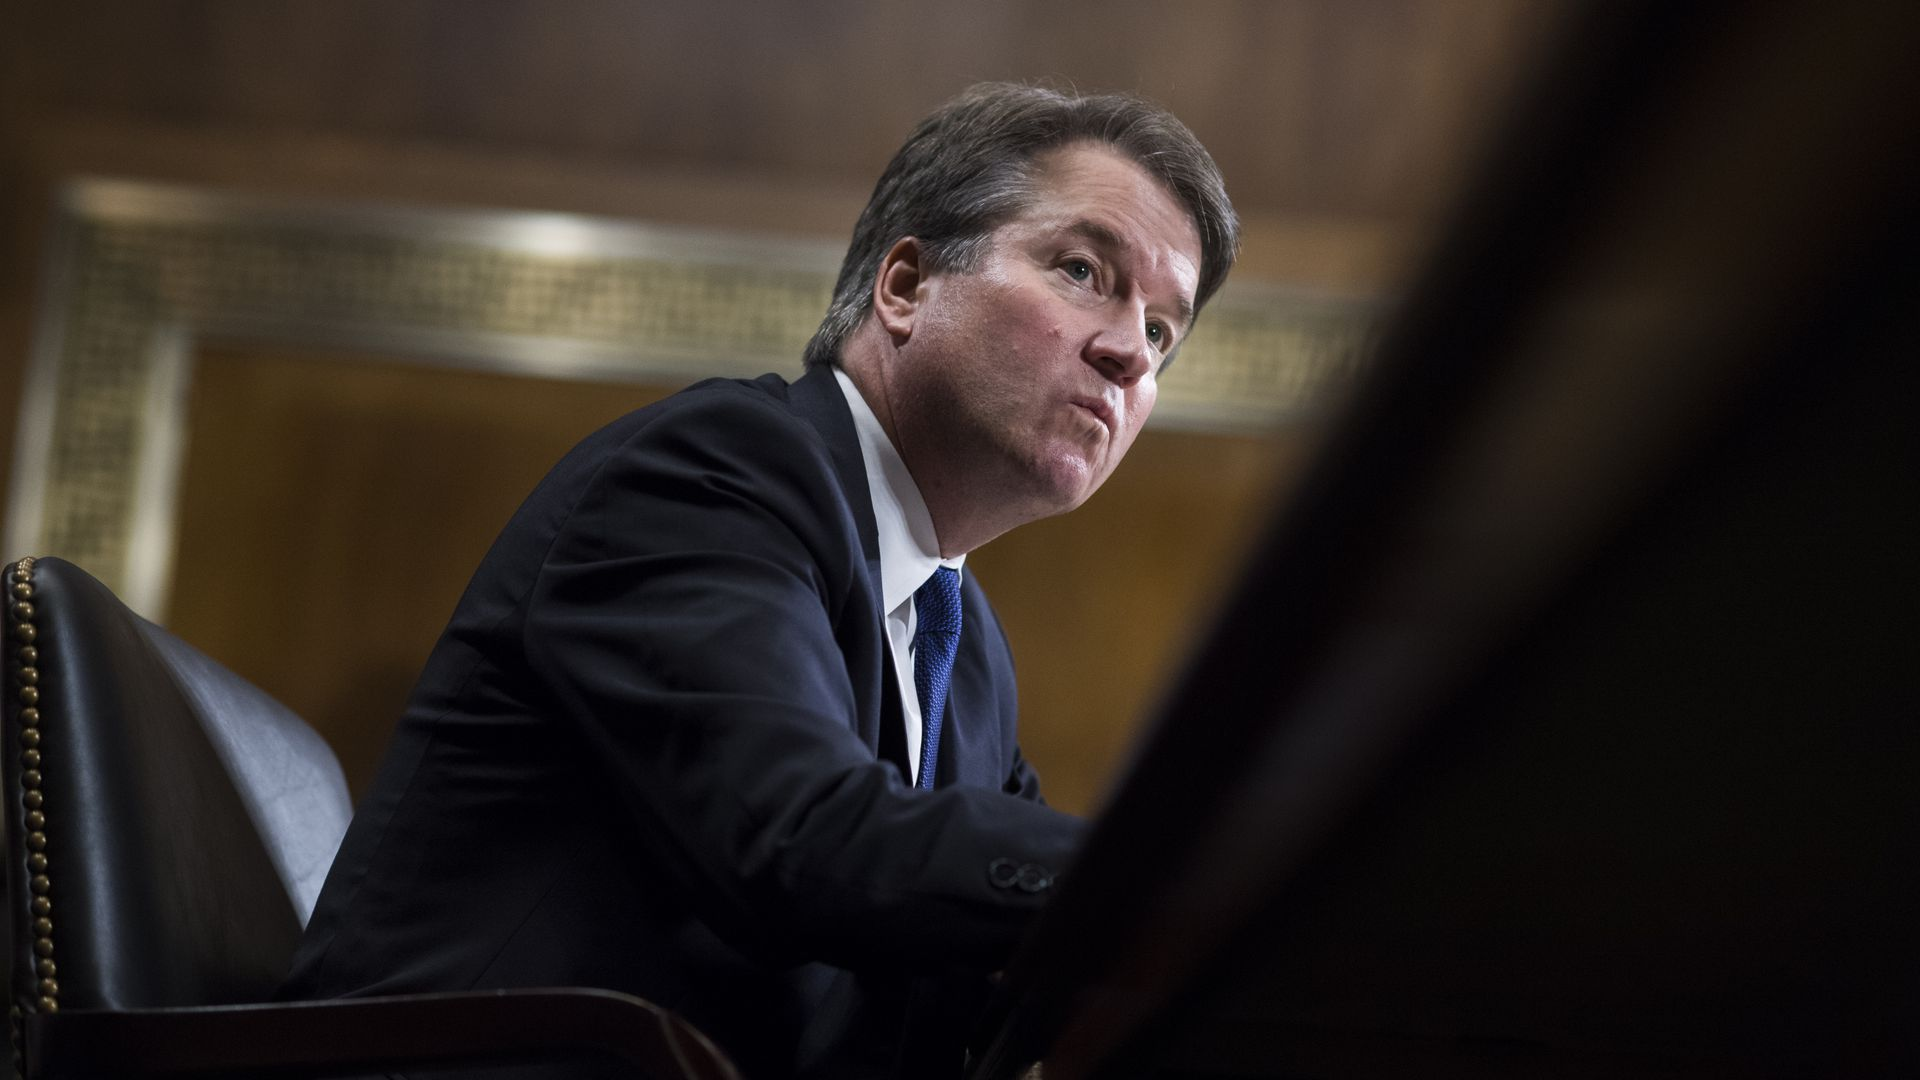 American Bar Association reopens evaluation of Kavanaugh